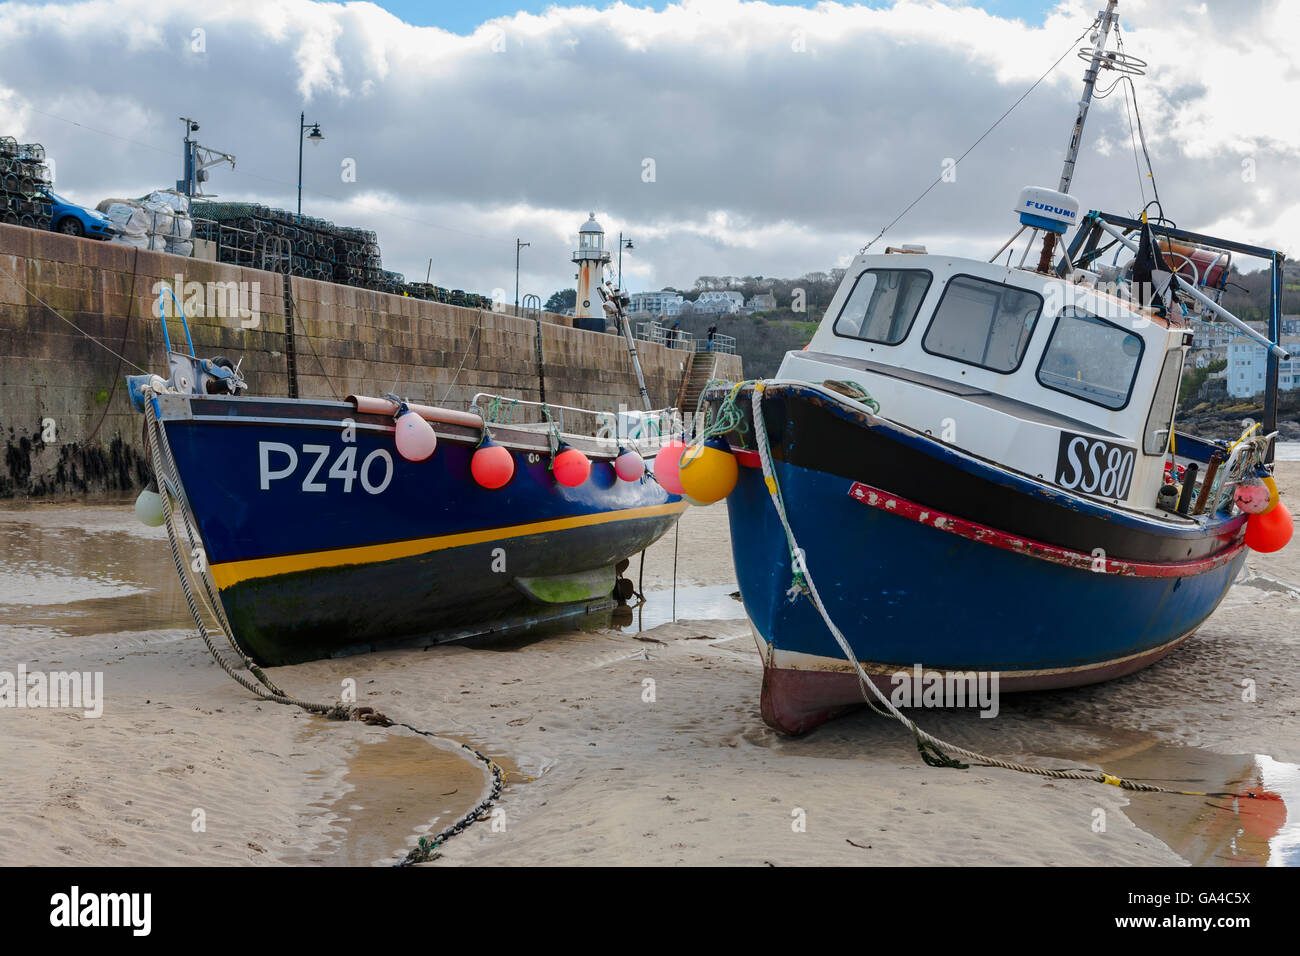 Fishing boats aground at low tide, St Ives harbour, Cornwall, UK Stock Photo